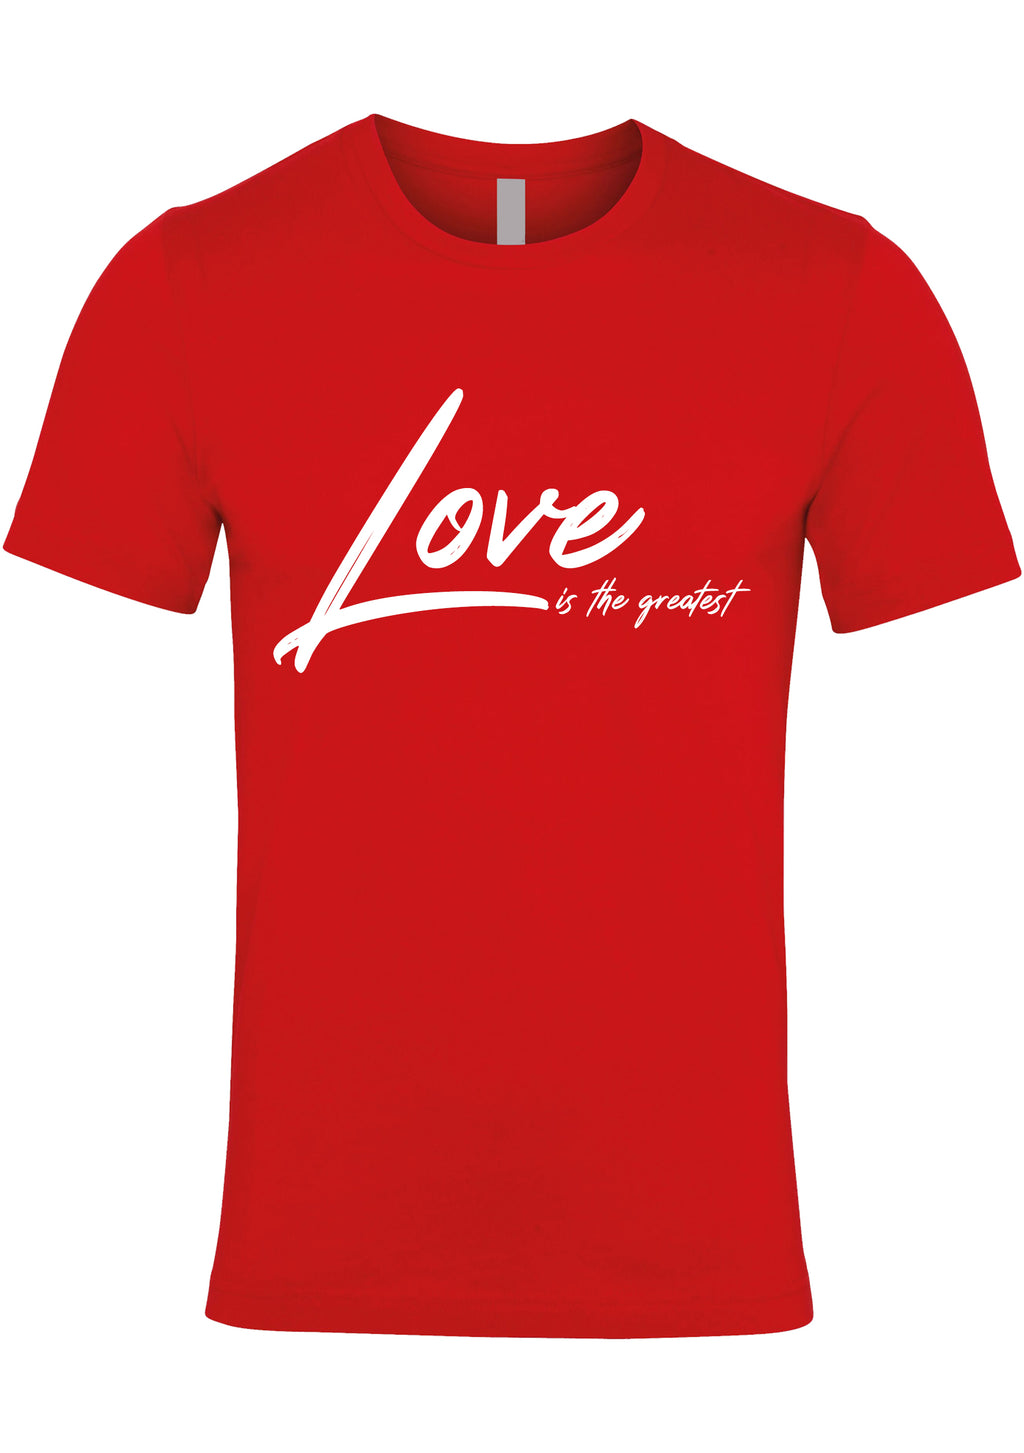 LOVE TG Unisex Jersey crew neck t-shirt (Red)